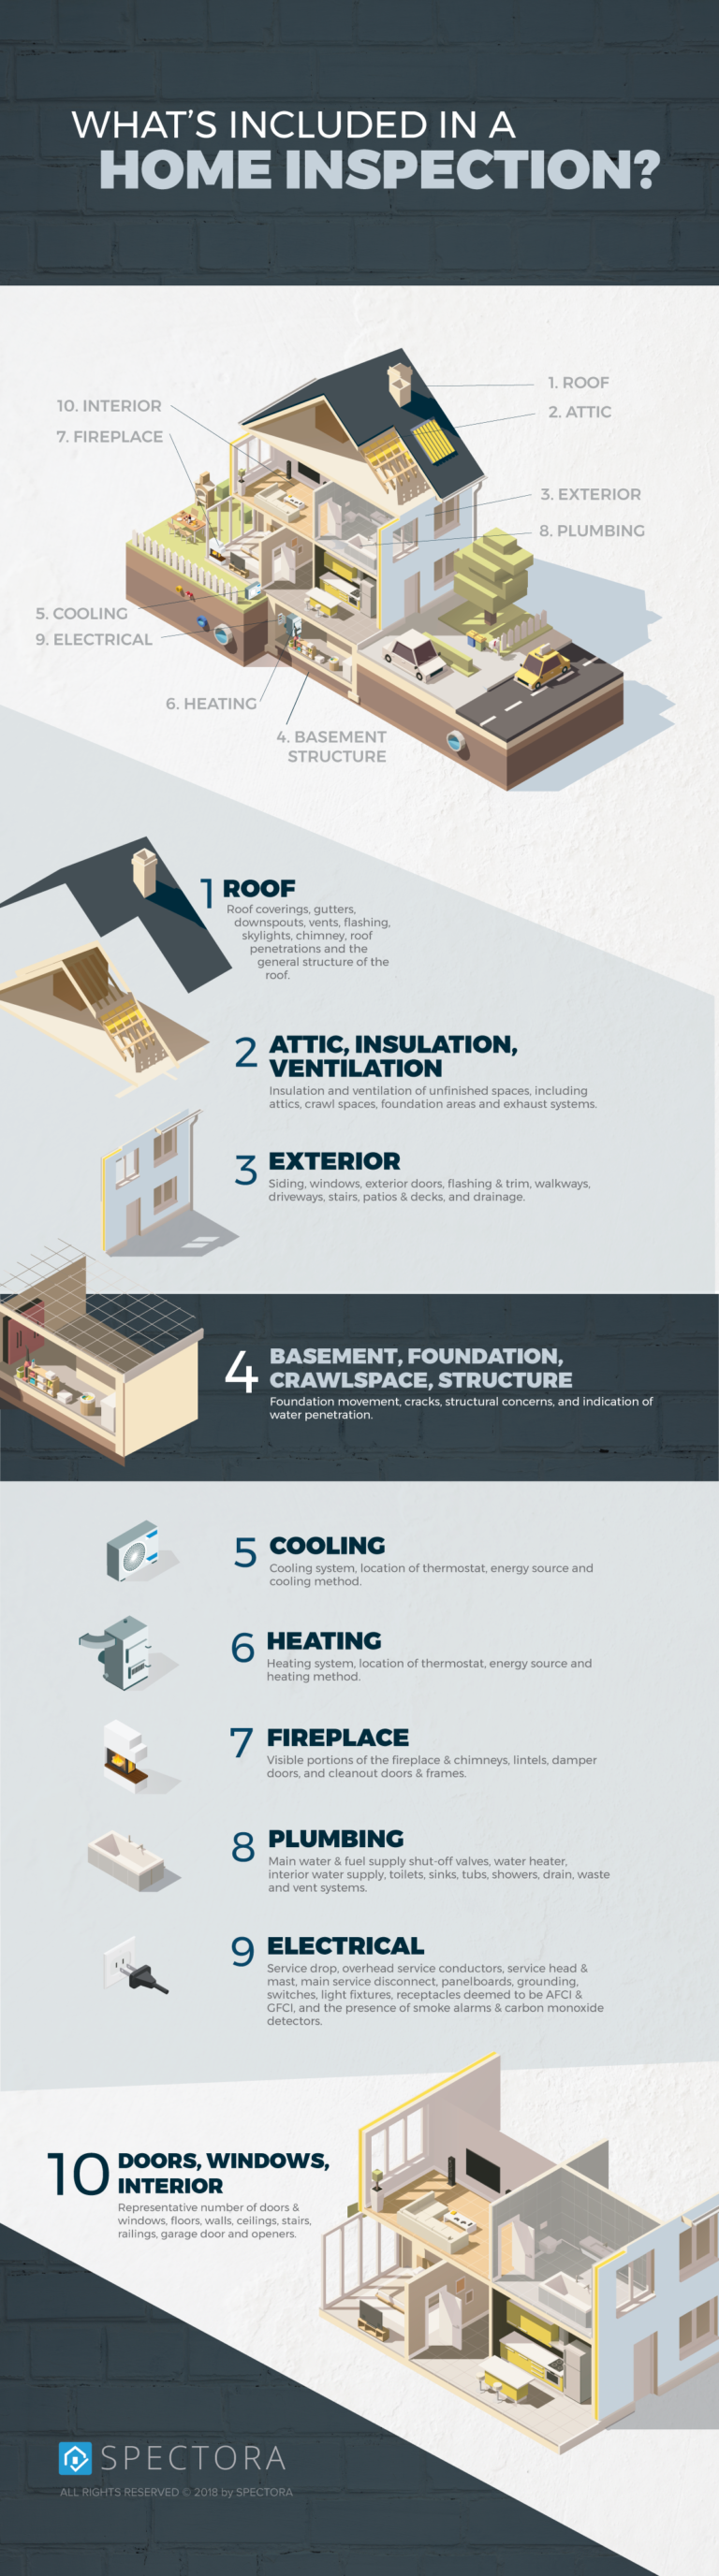 What's Included in a Home Inspection